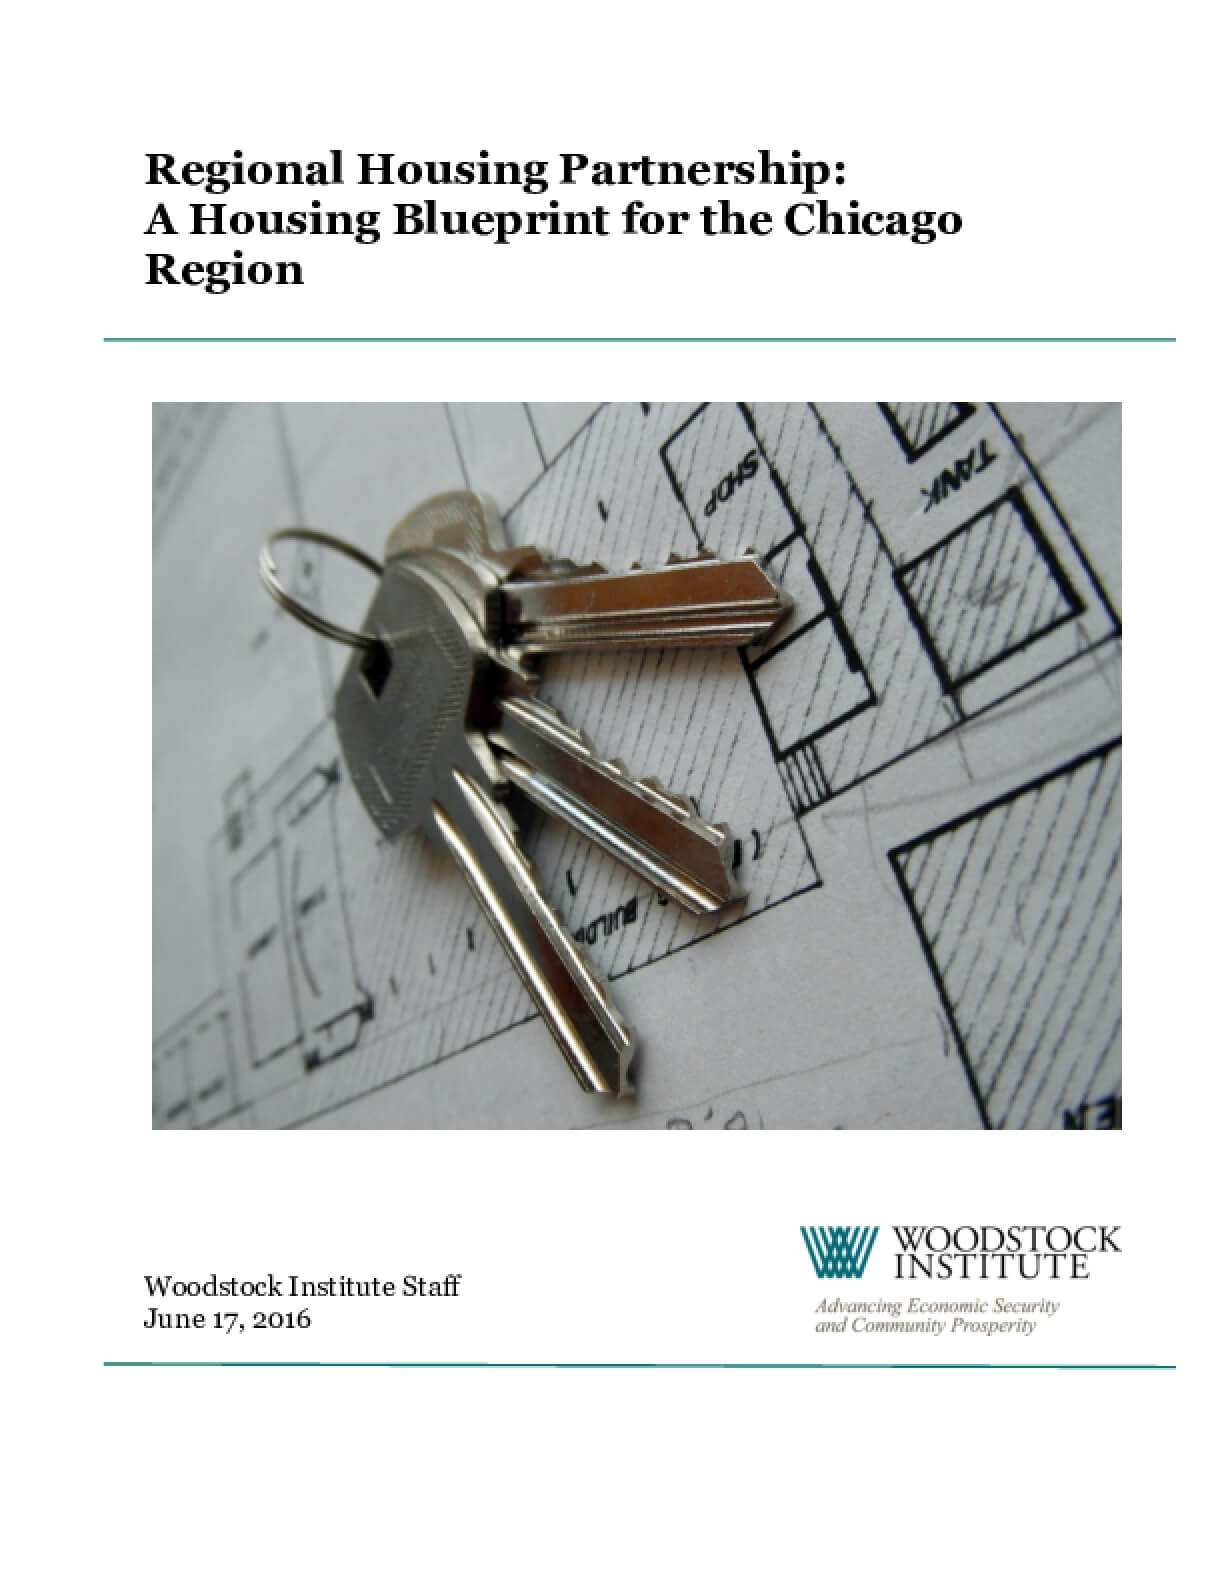 Regional Housing Partnership: A Housing Blueprint for the Chicago Region